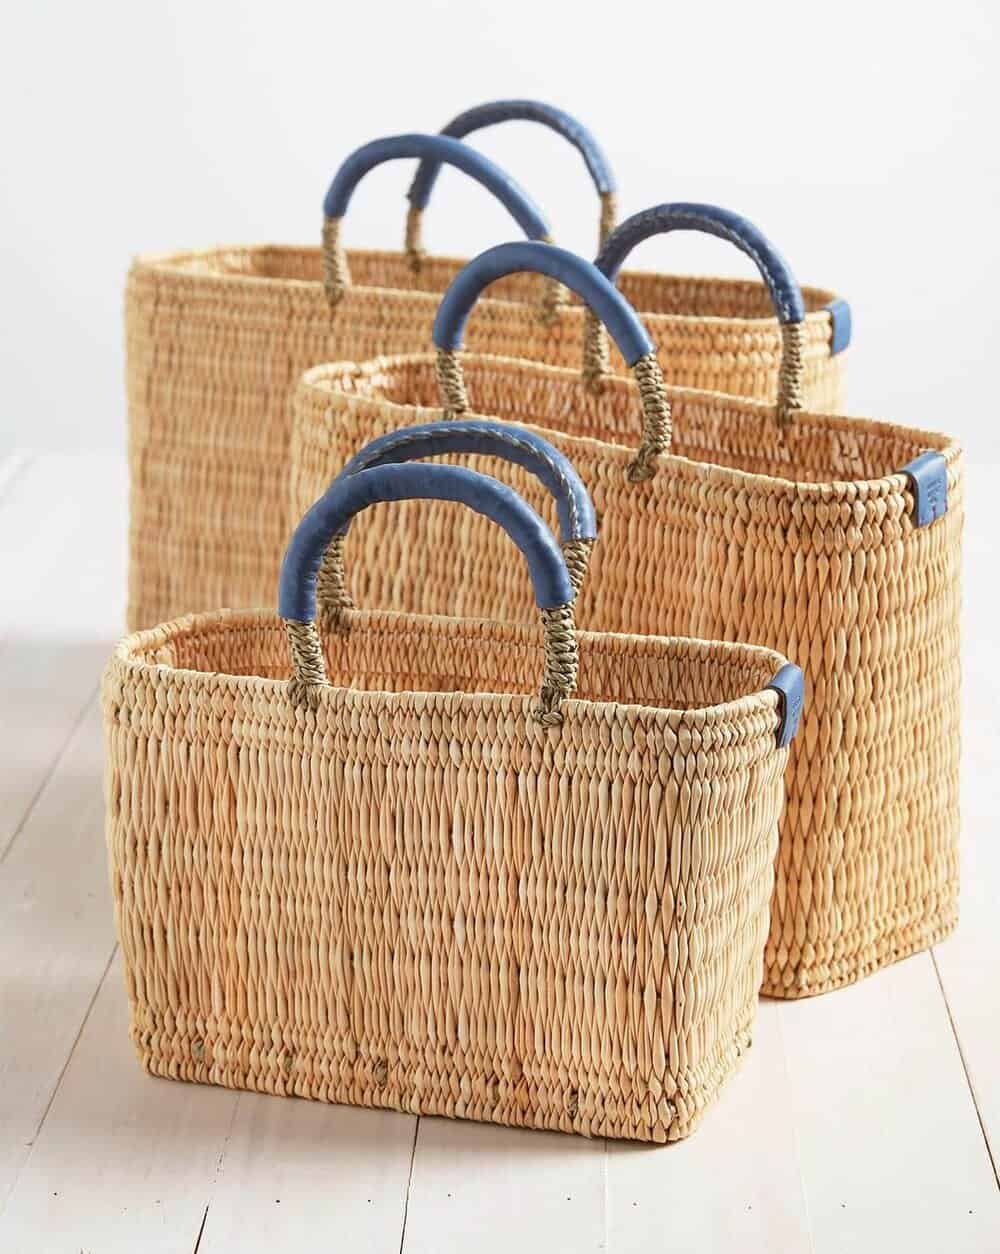 3 baskets for everyday parisian use with blue handles